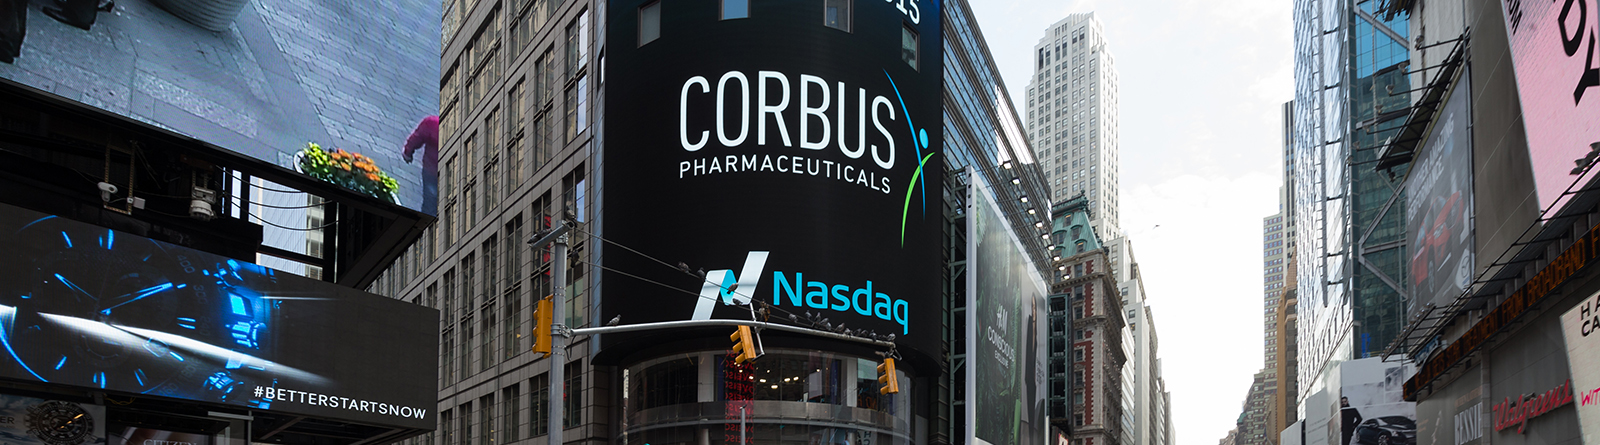 Corbus Pharmaceuticals Announces Pricing of Public Offering of Common Stock Banner